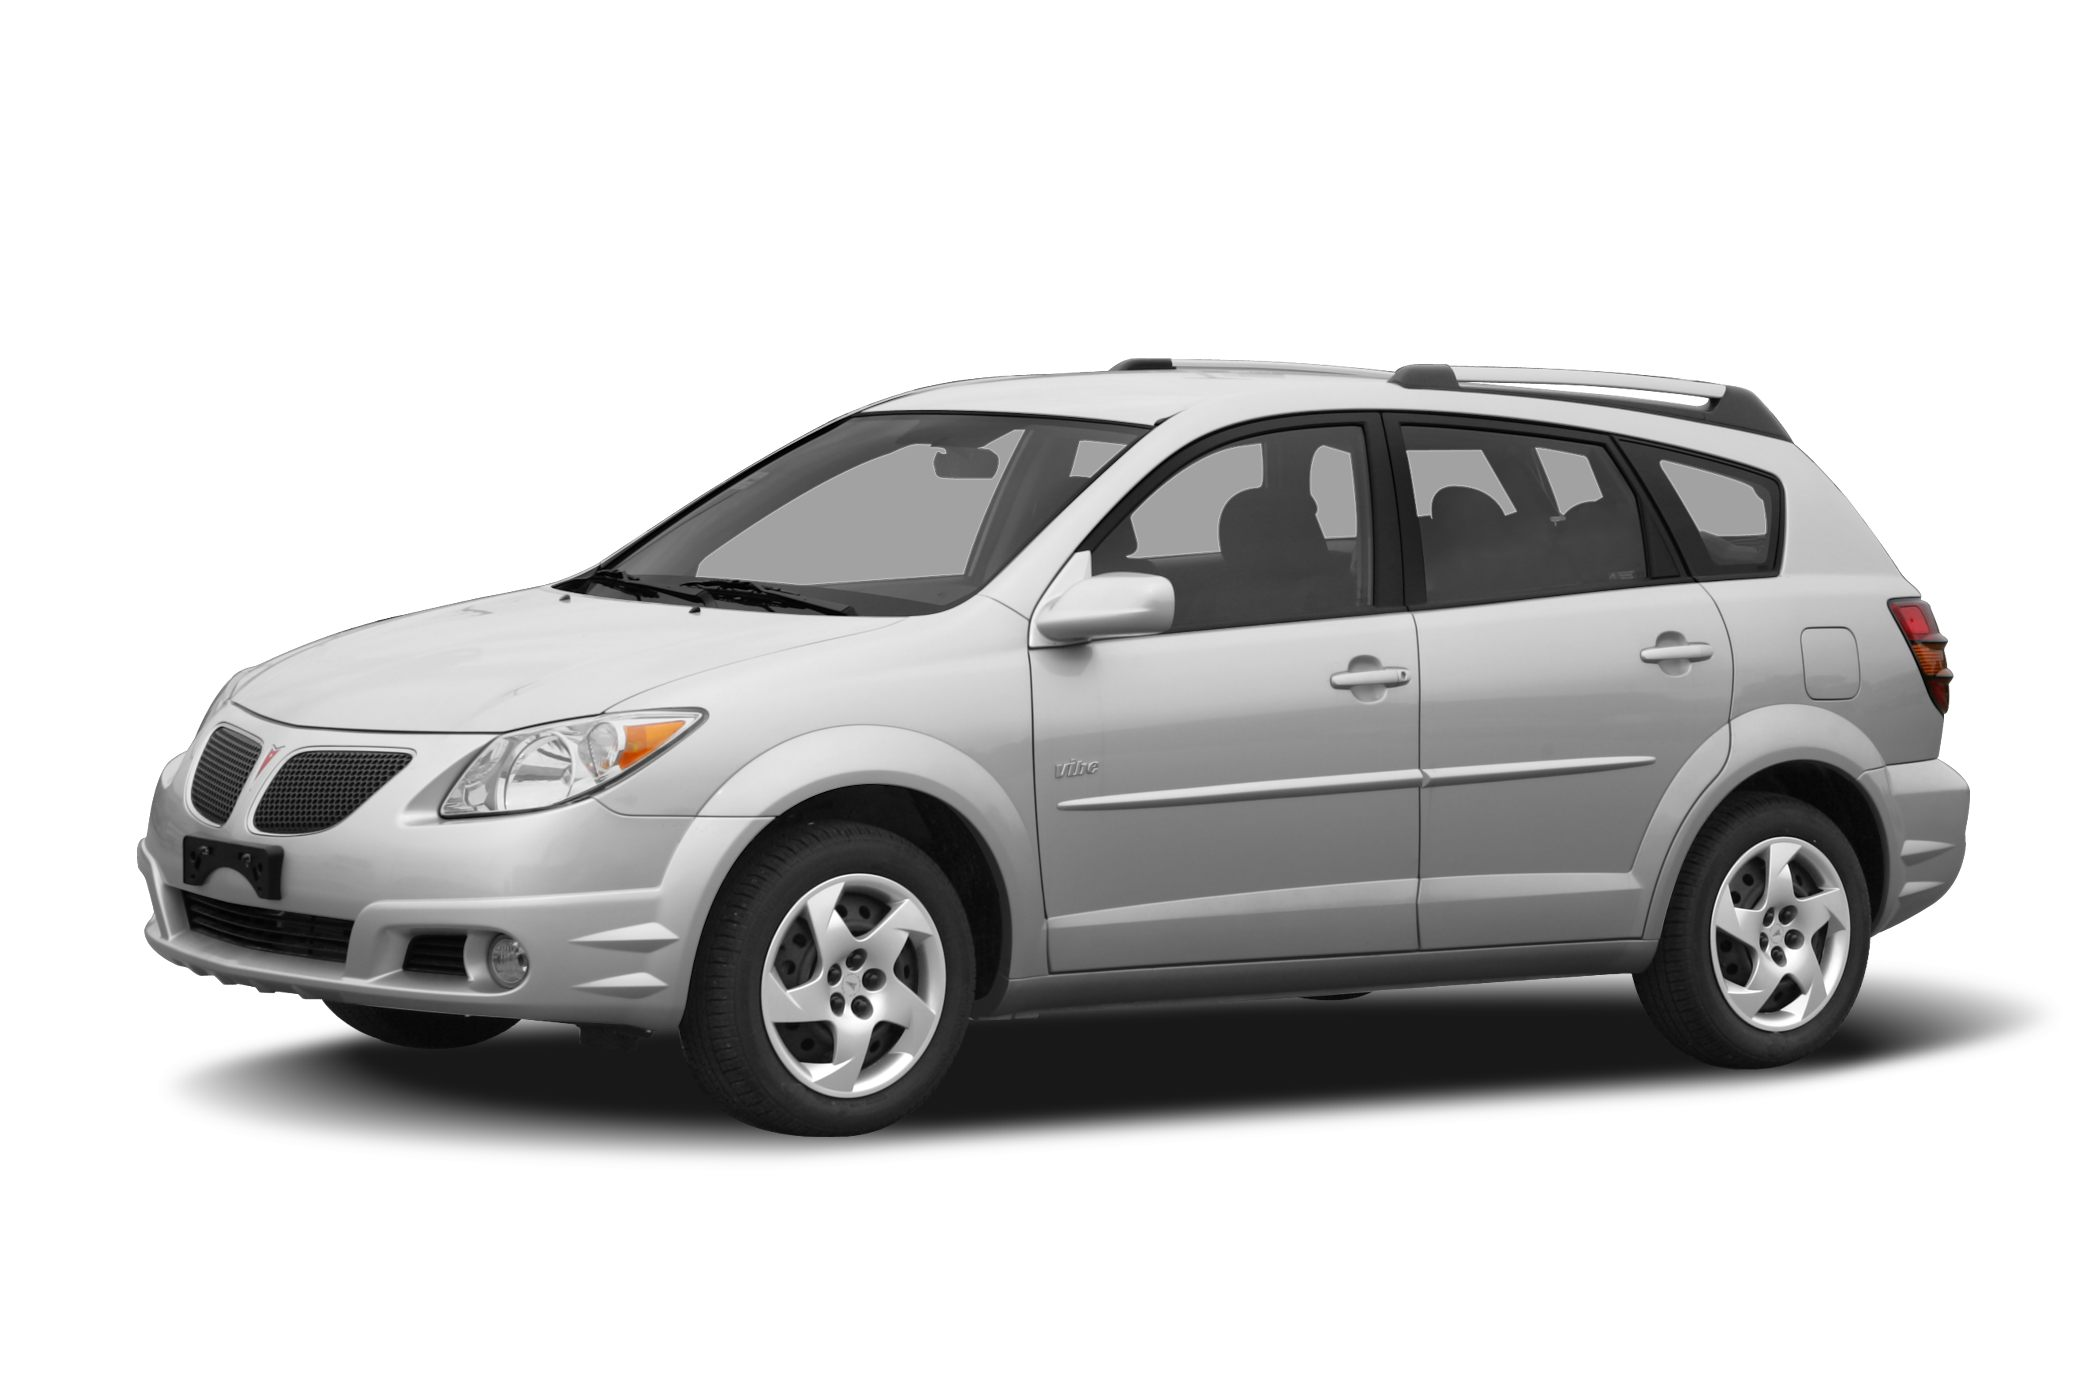 2008 Pontiac Vibe Hatchback for sale in Linden for $6,995 with 84,968 miles